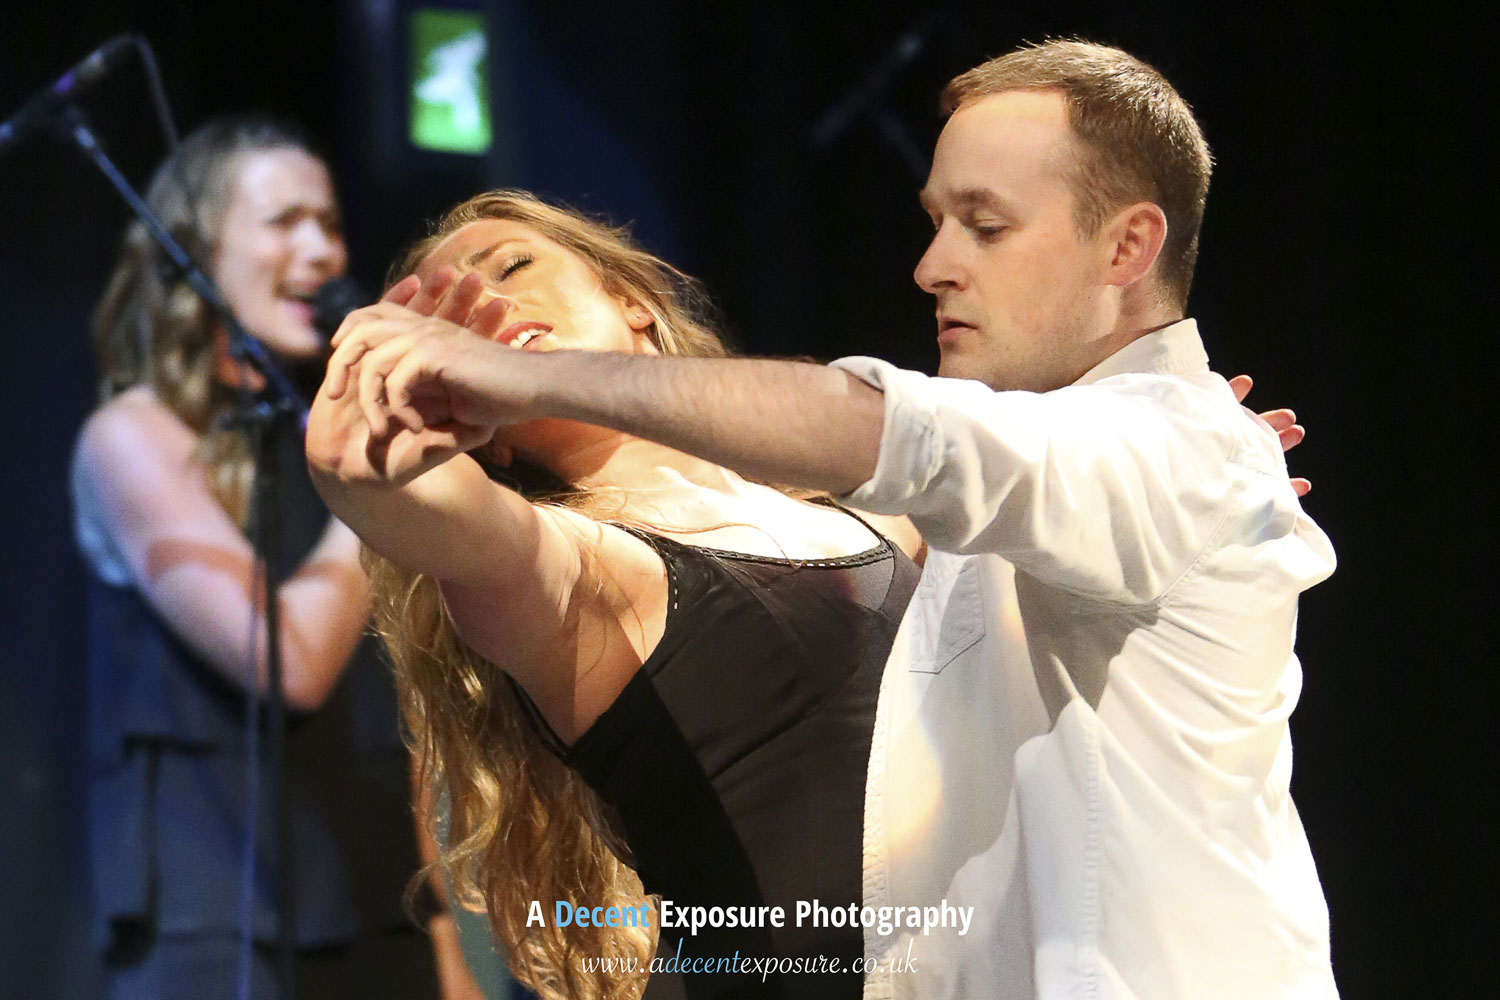 A Decent Exposure Dance & Stage Photography